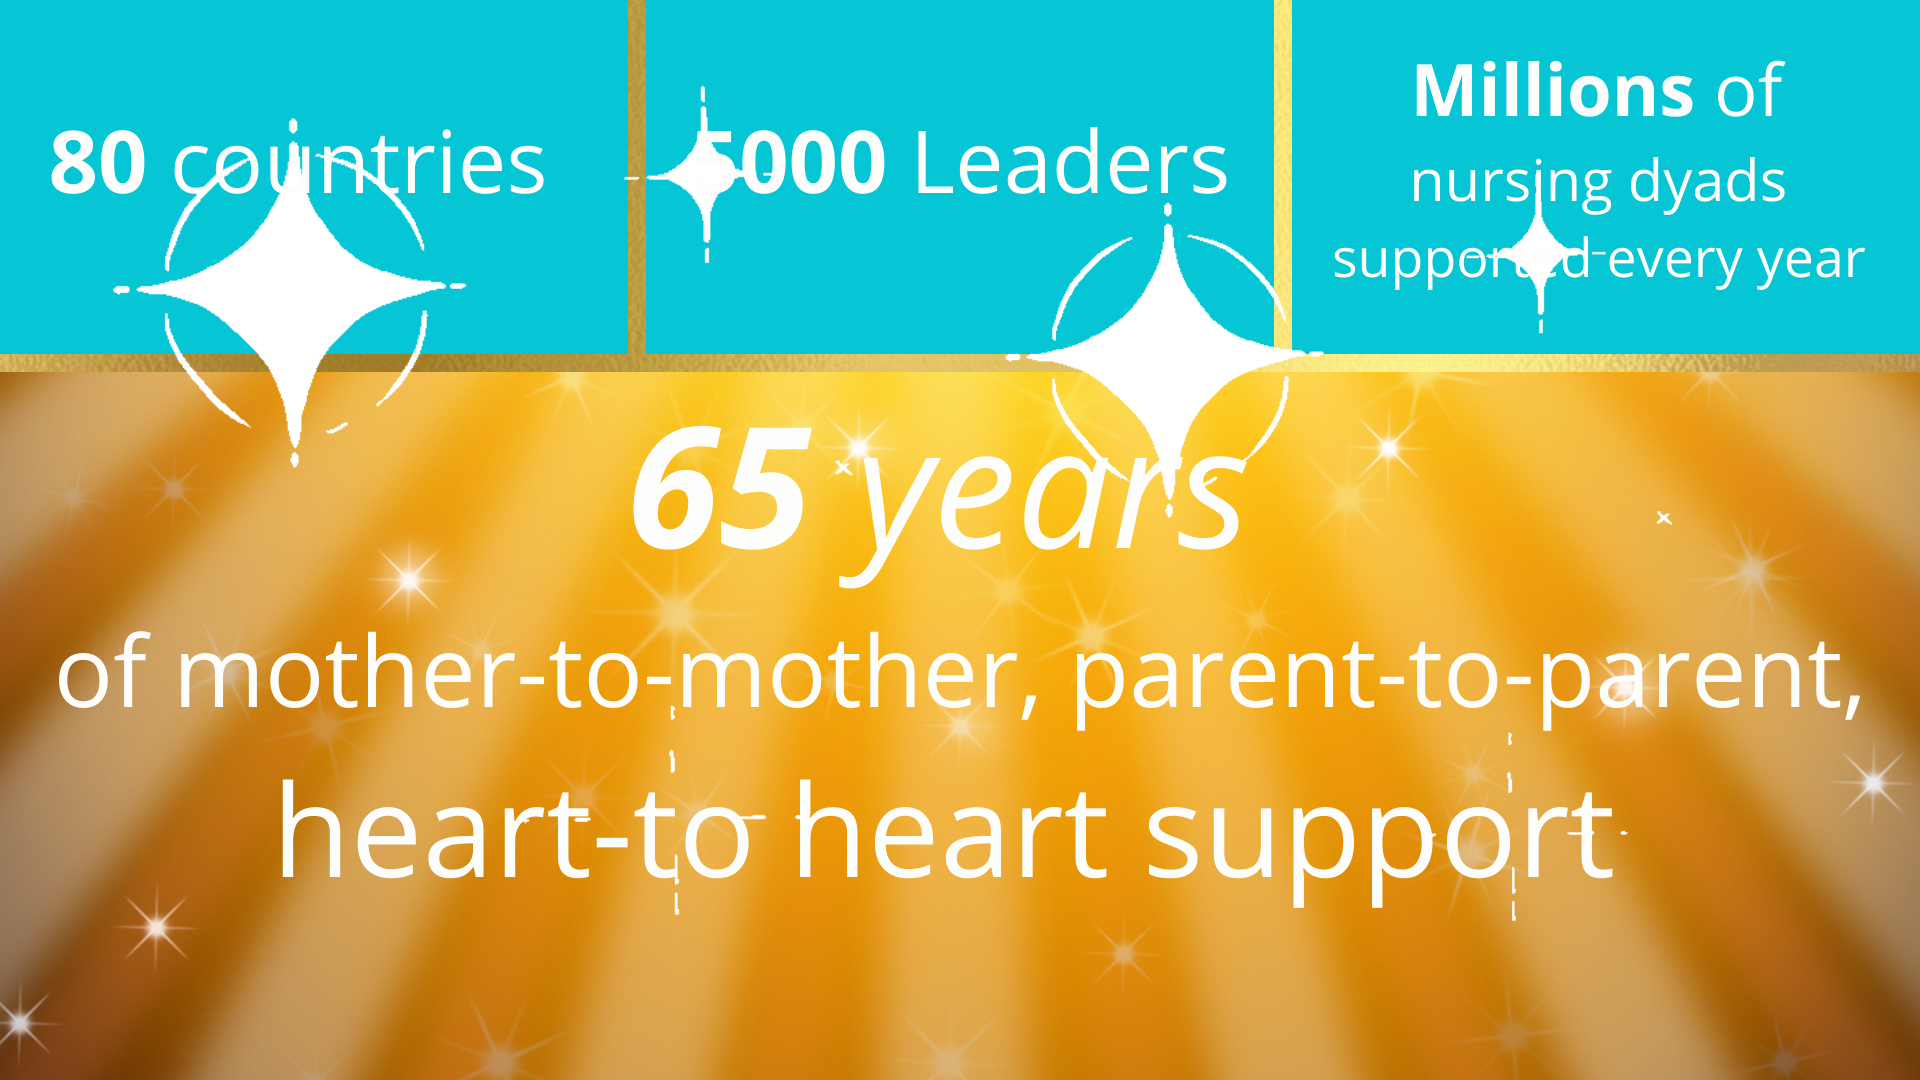 """Gold background with white text - """"65 years of mother-to-mother, parent-to-parent, heart-to heart support"""". 3 teal boxes along the top with white text - '80 countries', 5000 Leaders', Millions of nursing dyads supported every year'"""